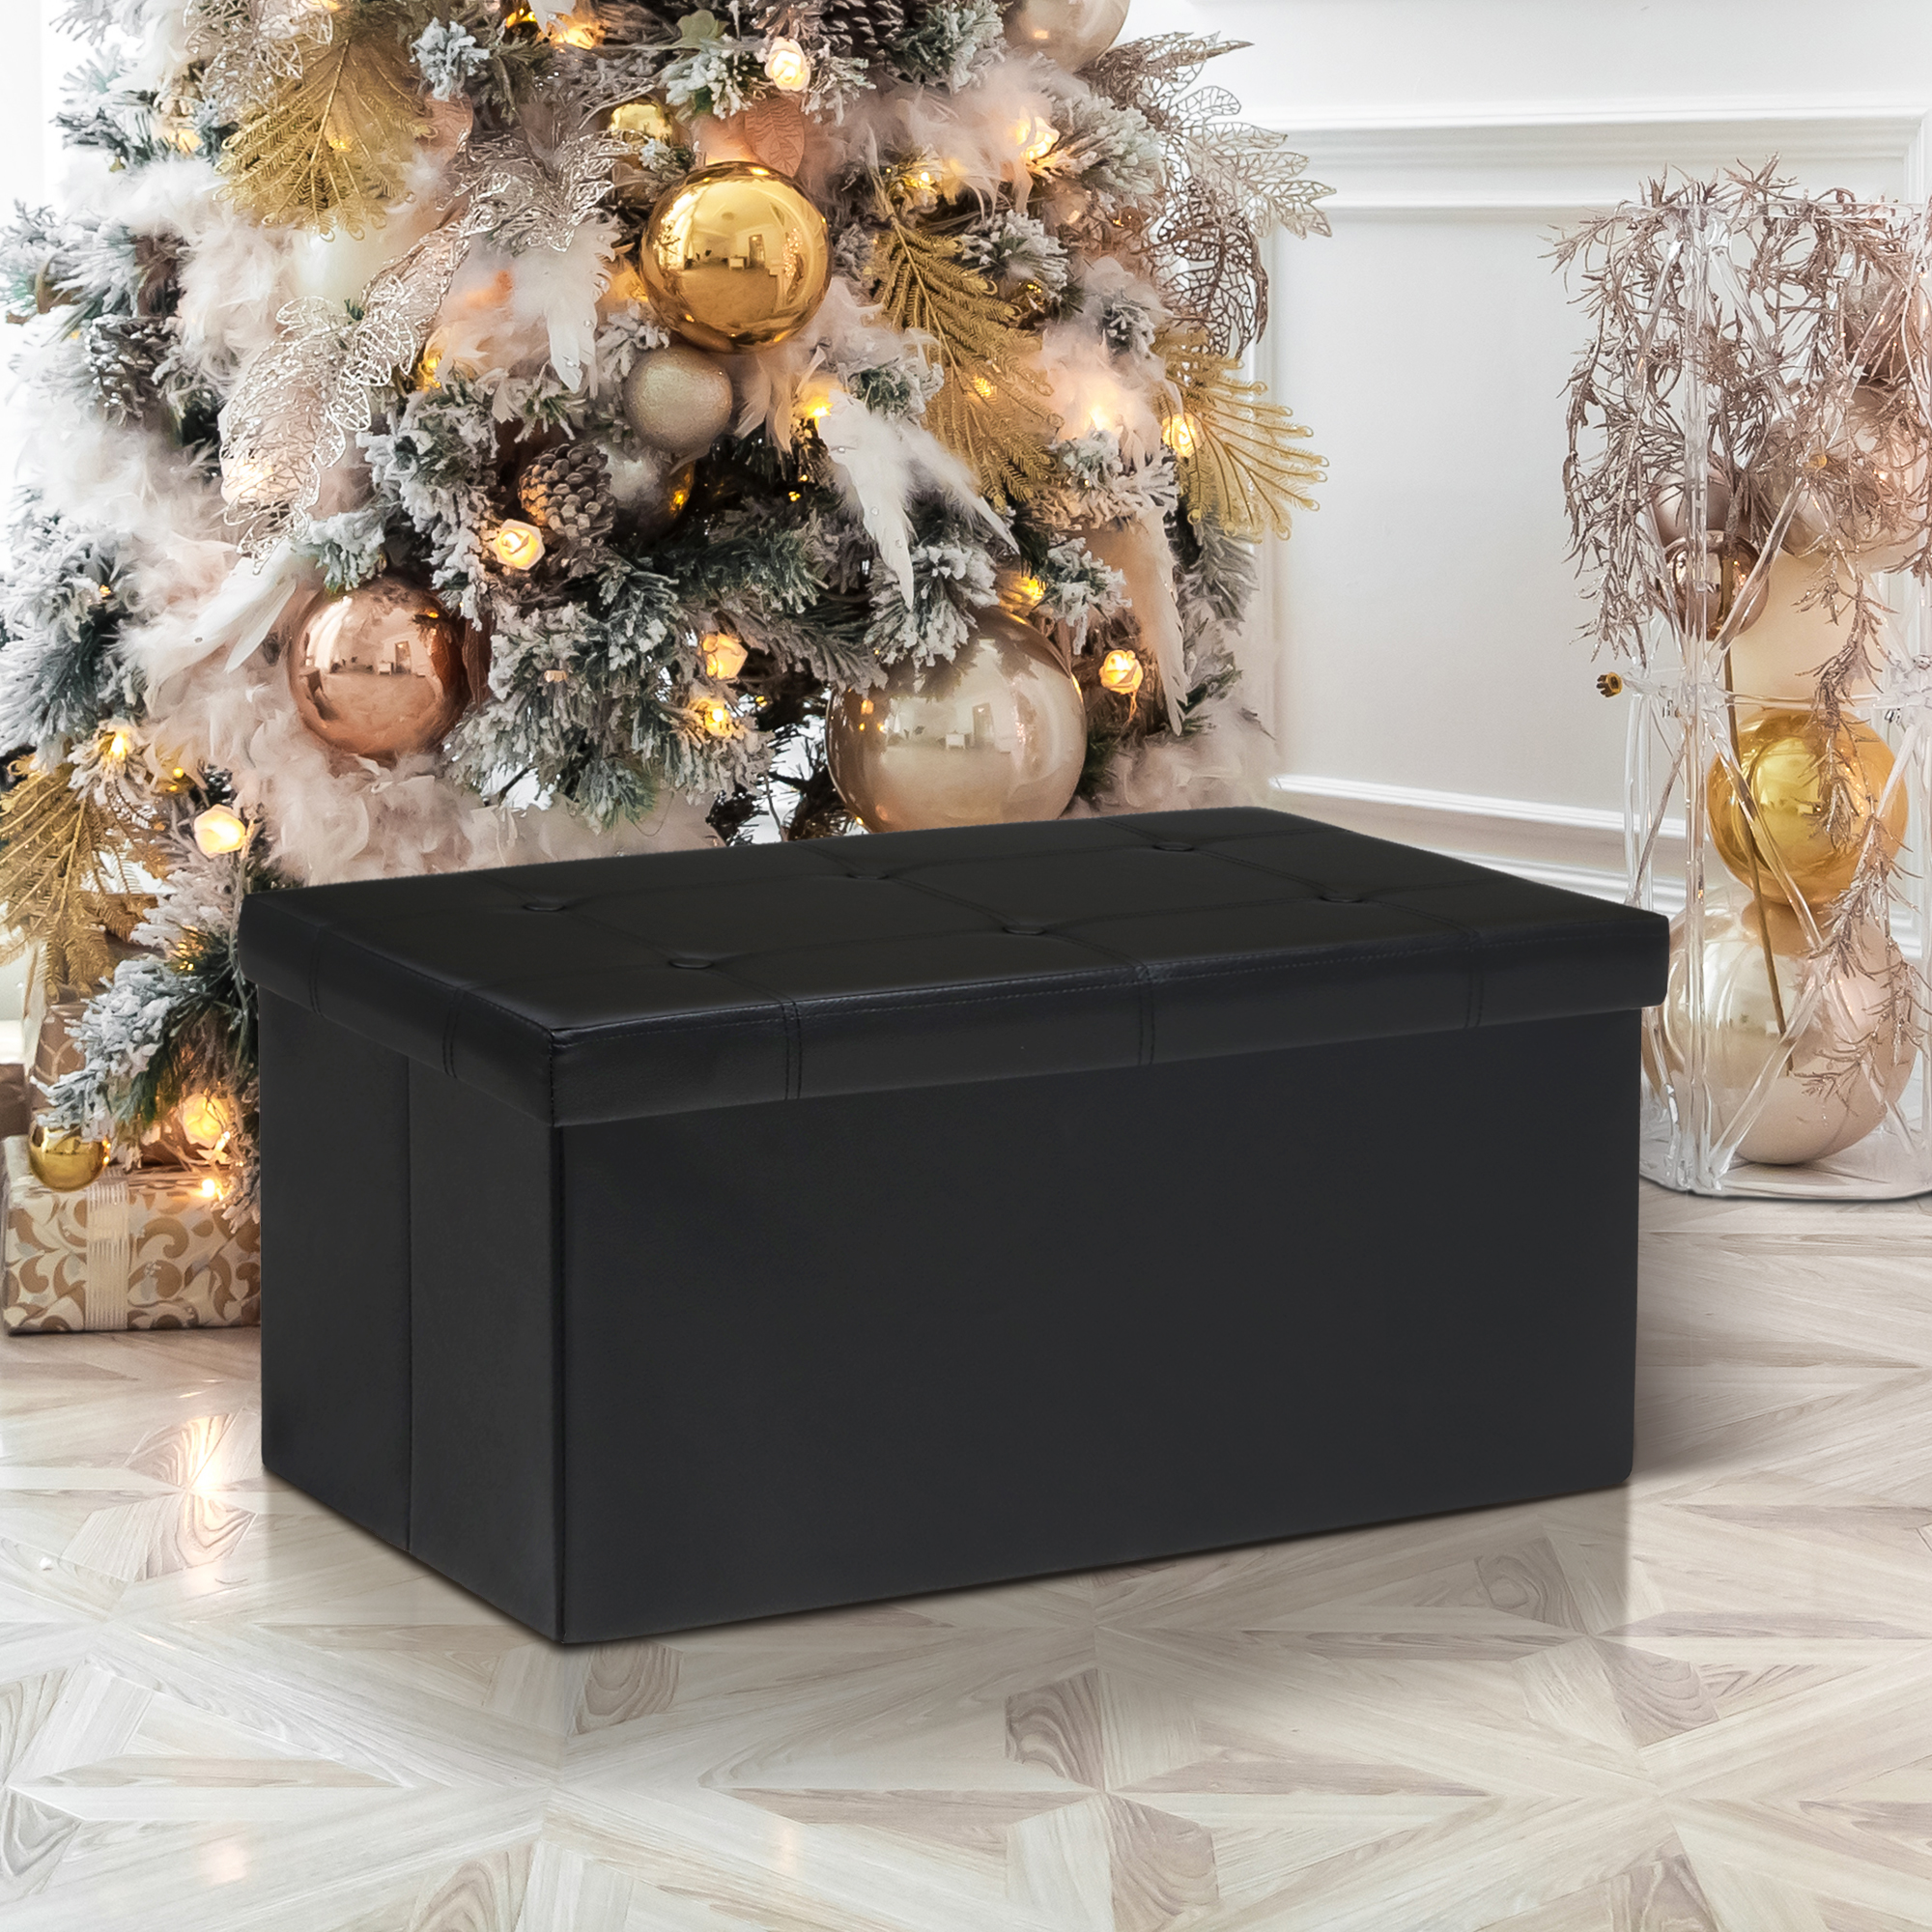 Otto & Ben Memory Foam Storage Ottoman Bench ONLY $28 (Reg $40)